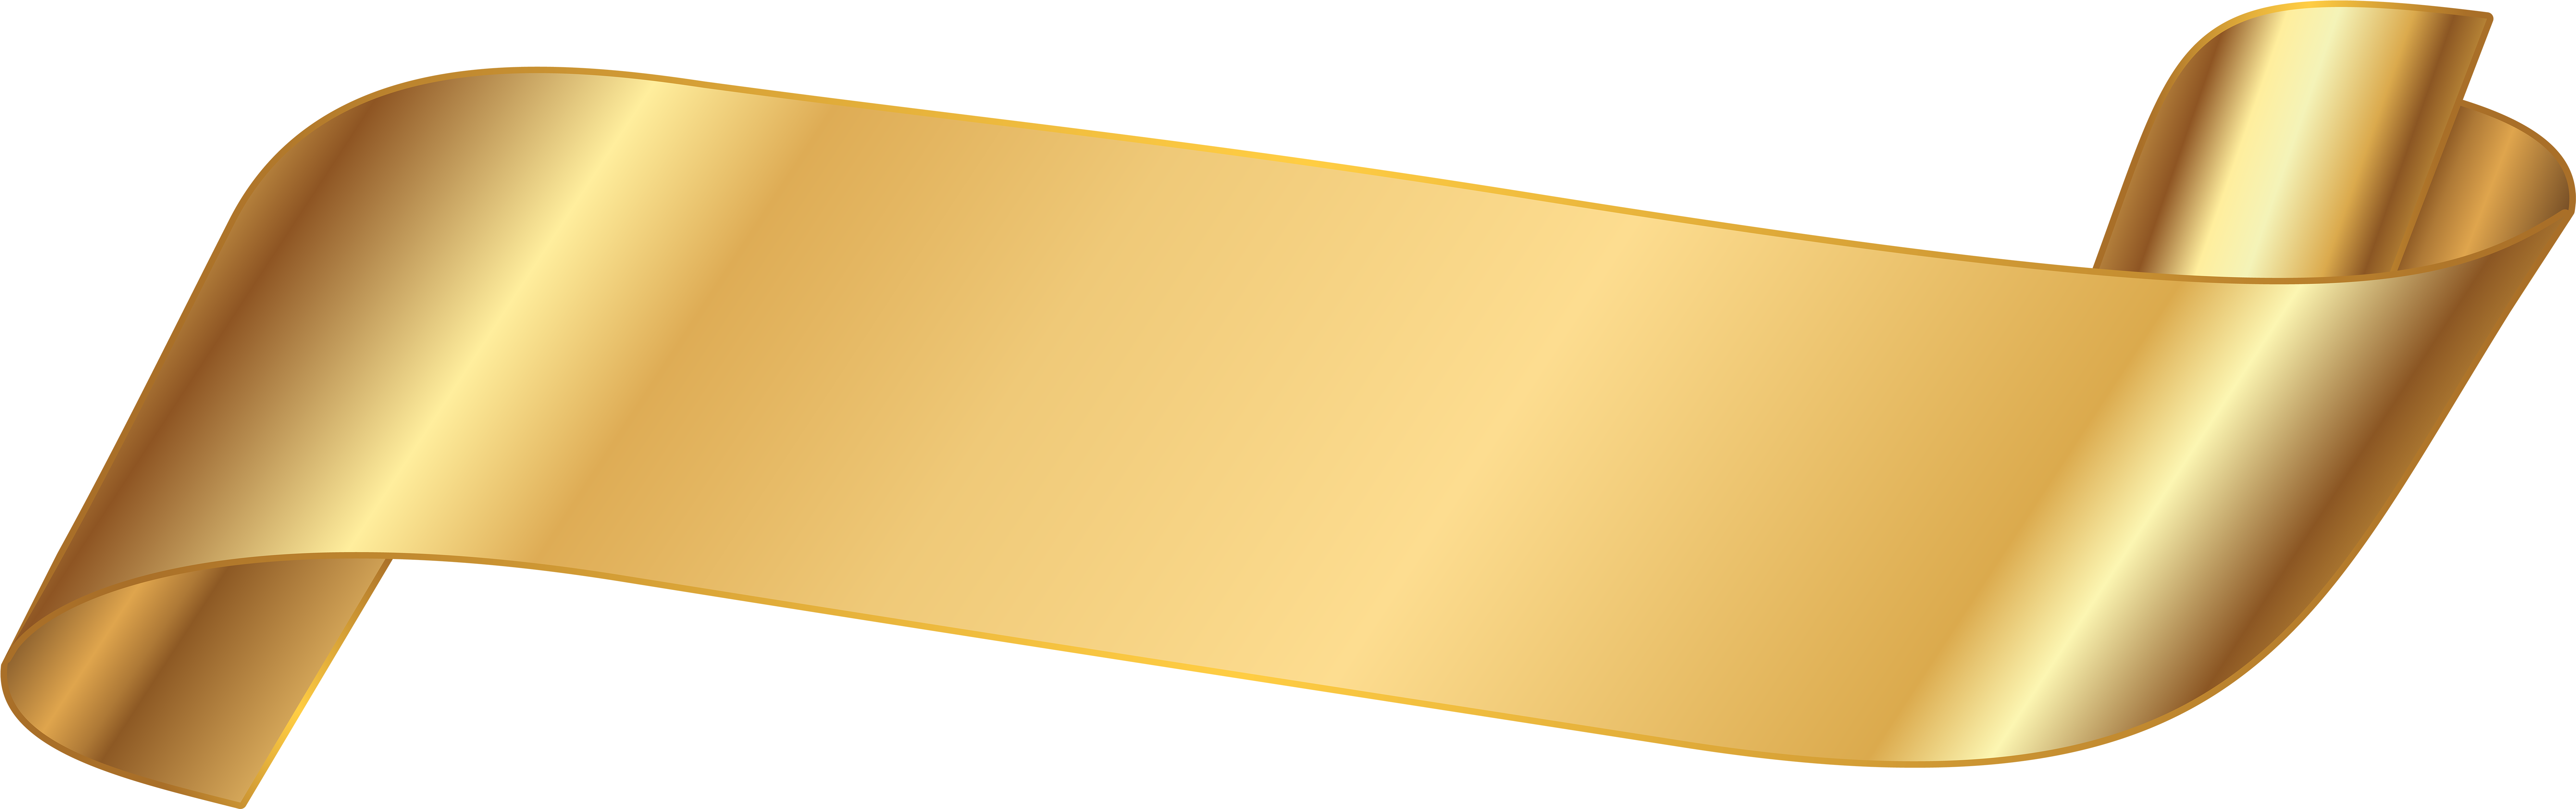 Gold Ribbon Banner Png (8000x2576), Png Download